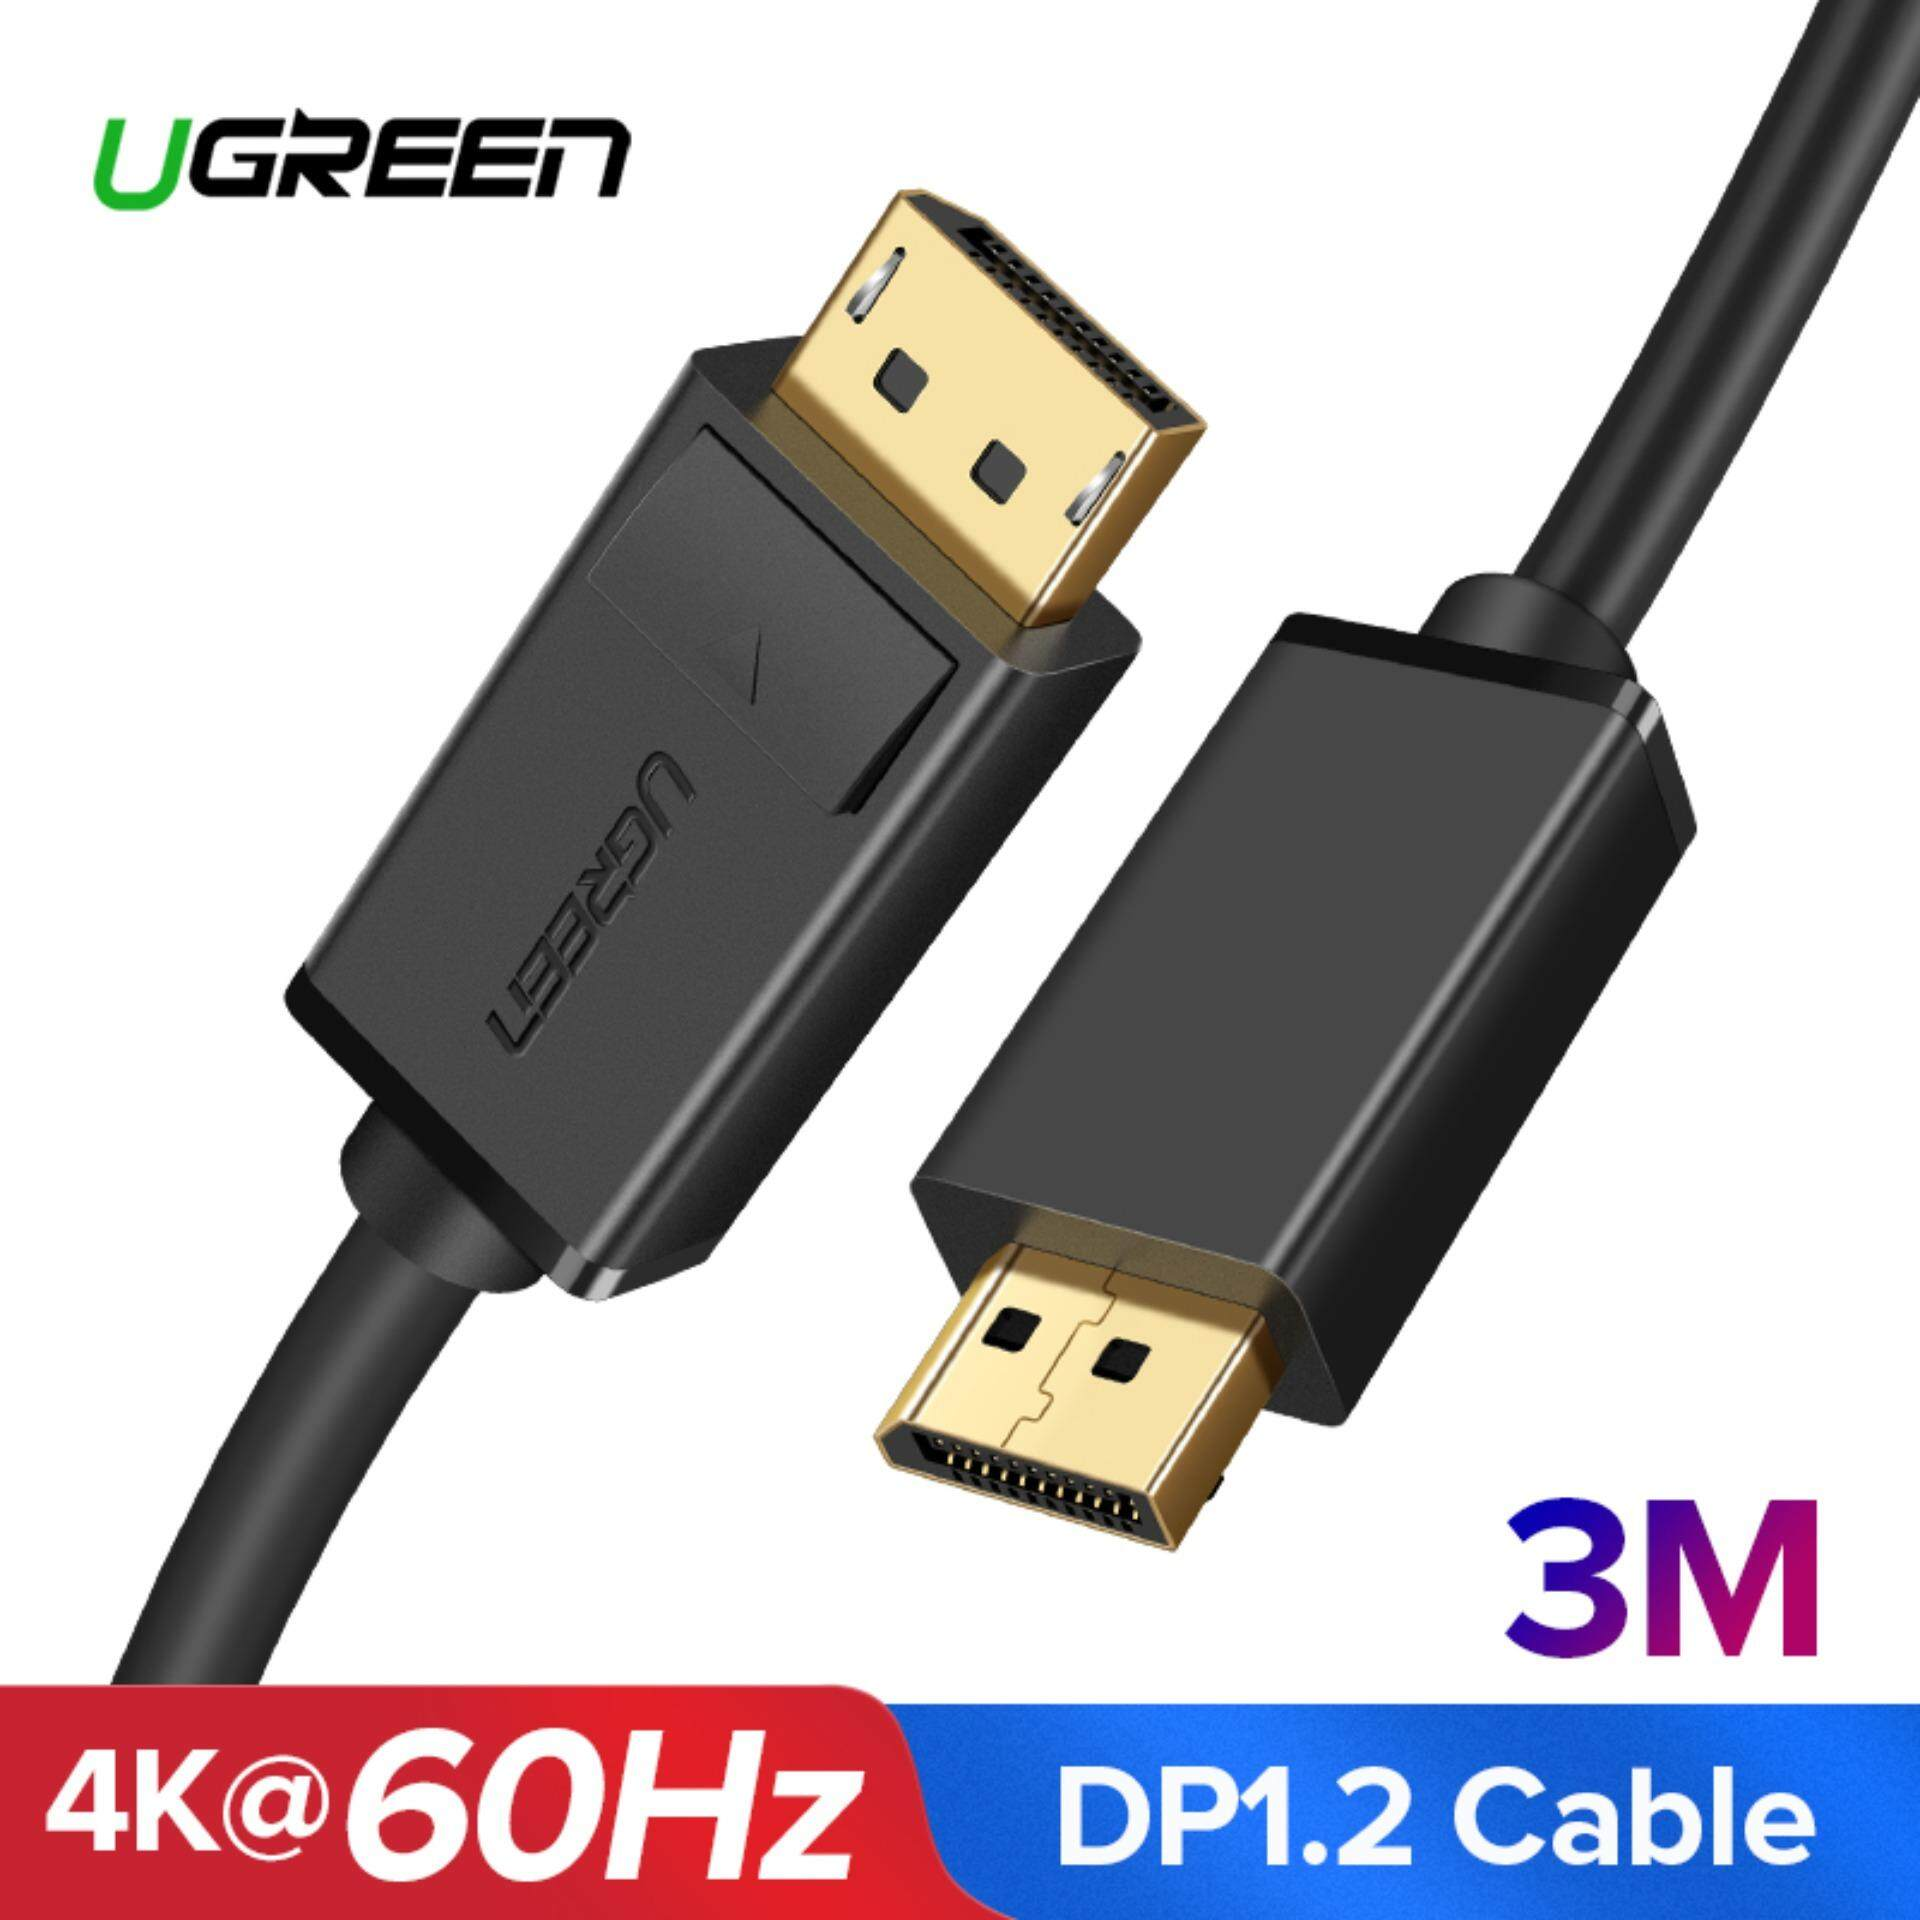 Ugreen 3meter 4k Displayport To Displayport Cable Gold Plated 1.2 Version Audio Video Cable By Ugreen Flagship Store.